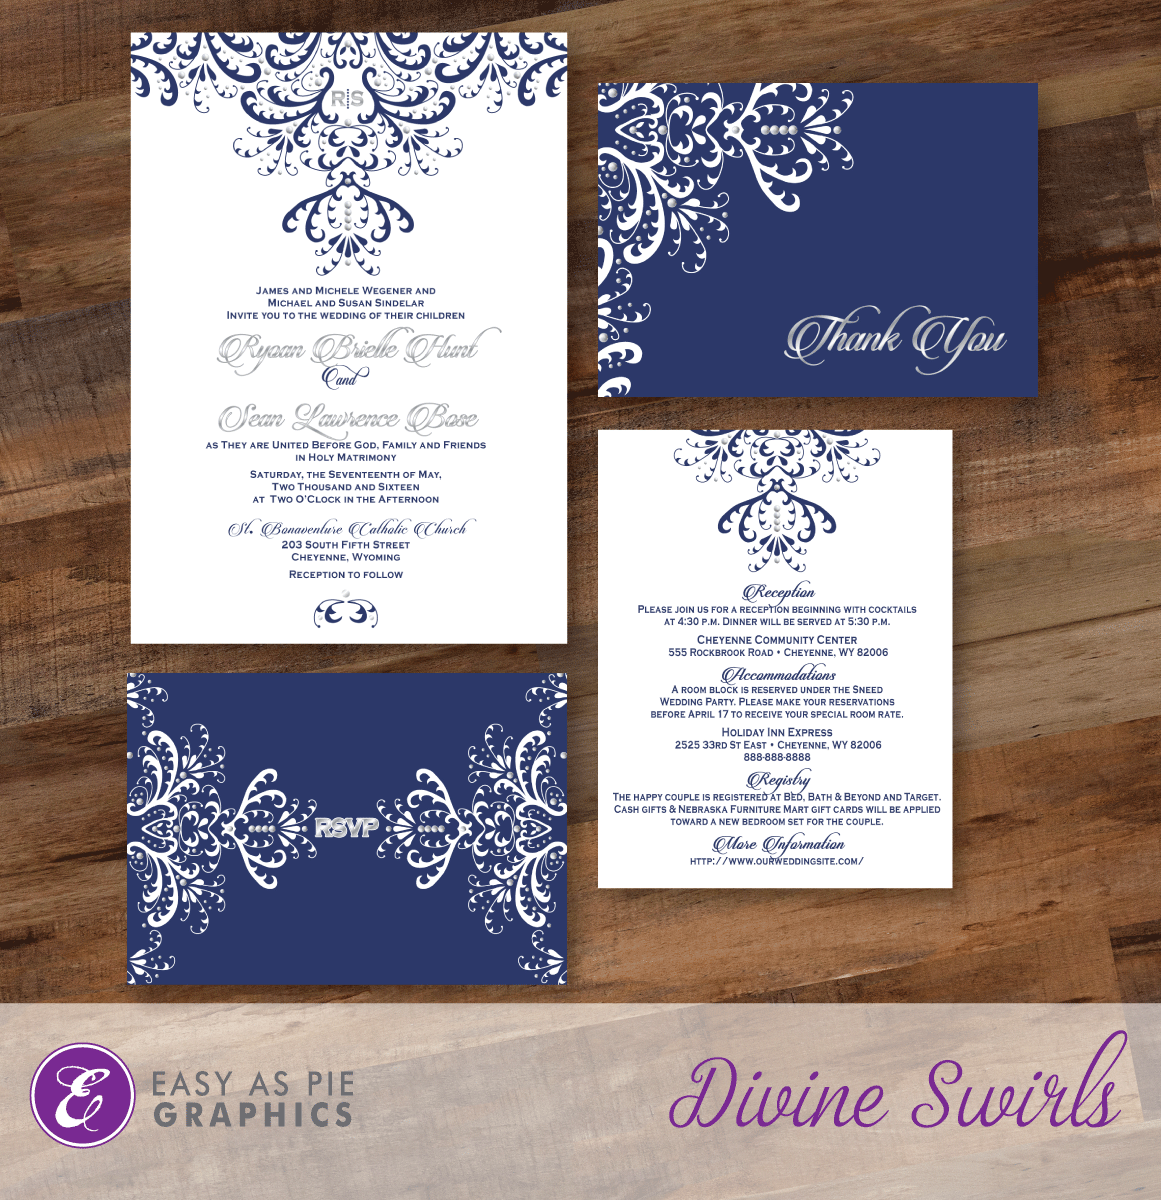 Divine Swirls Wedding Suite